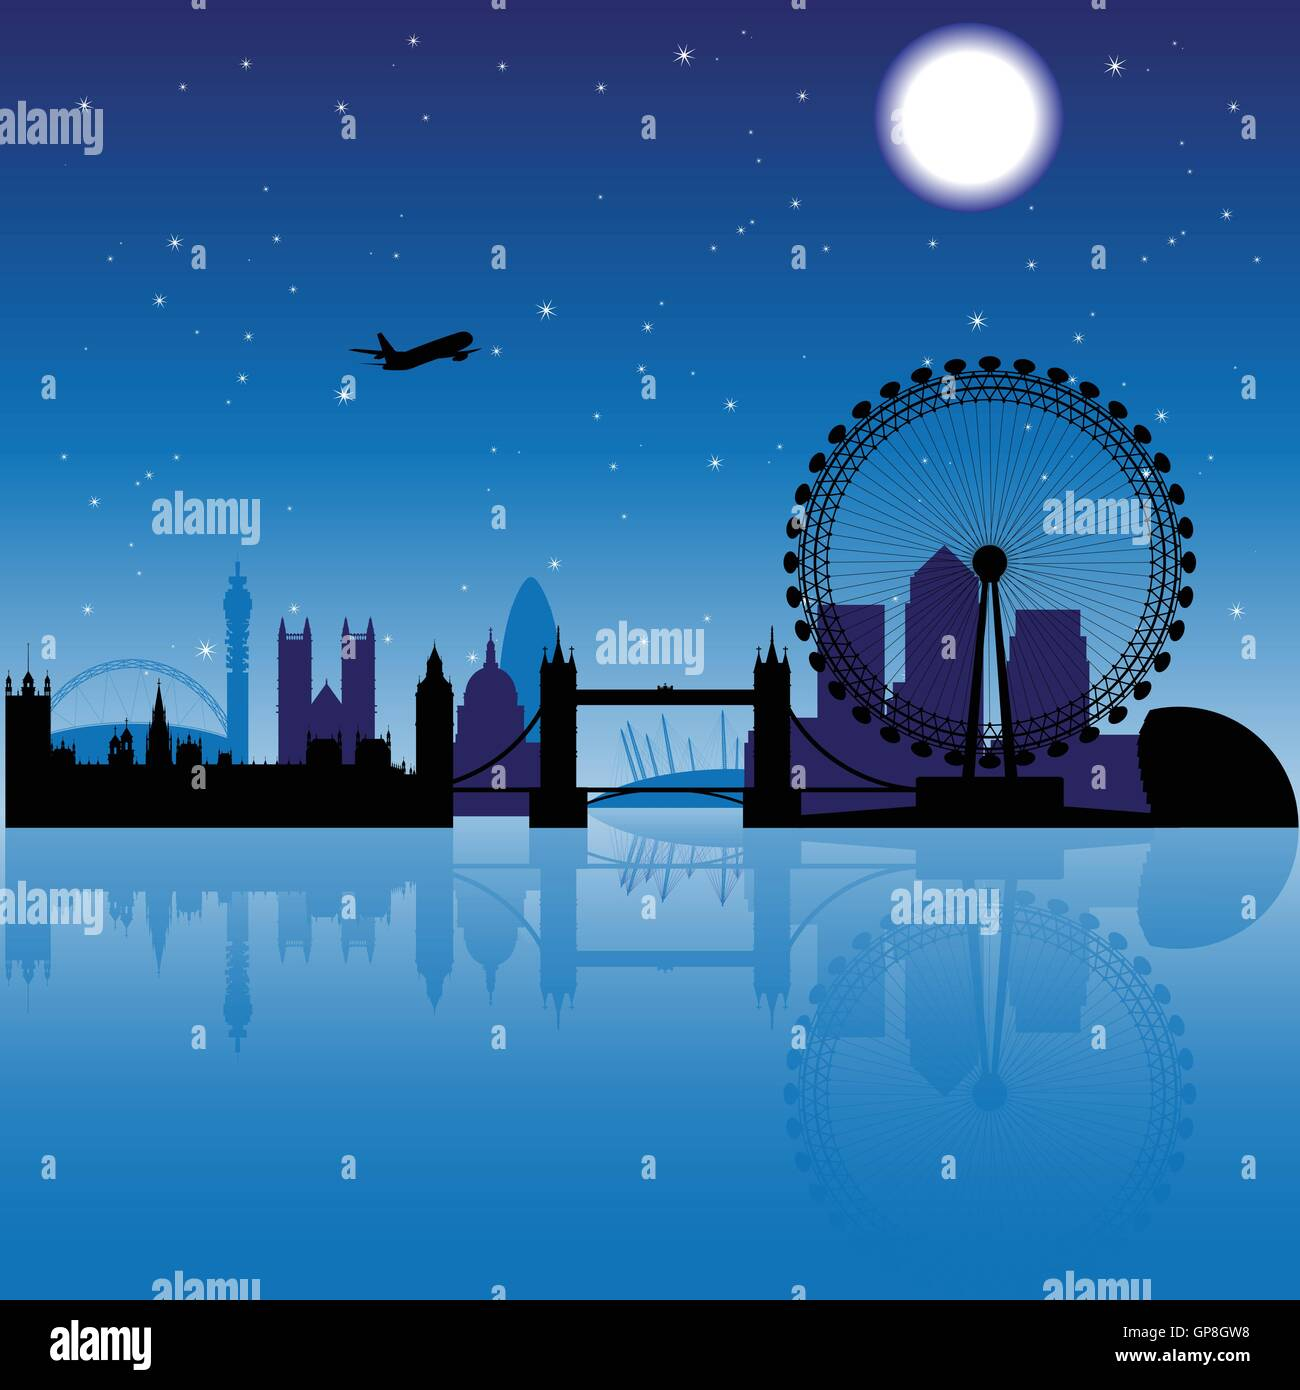 London silhouette at night with stars and moon on the background - Stock Vector